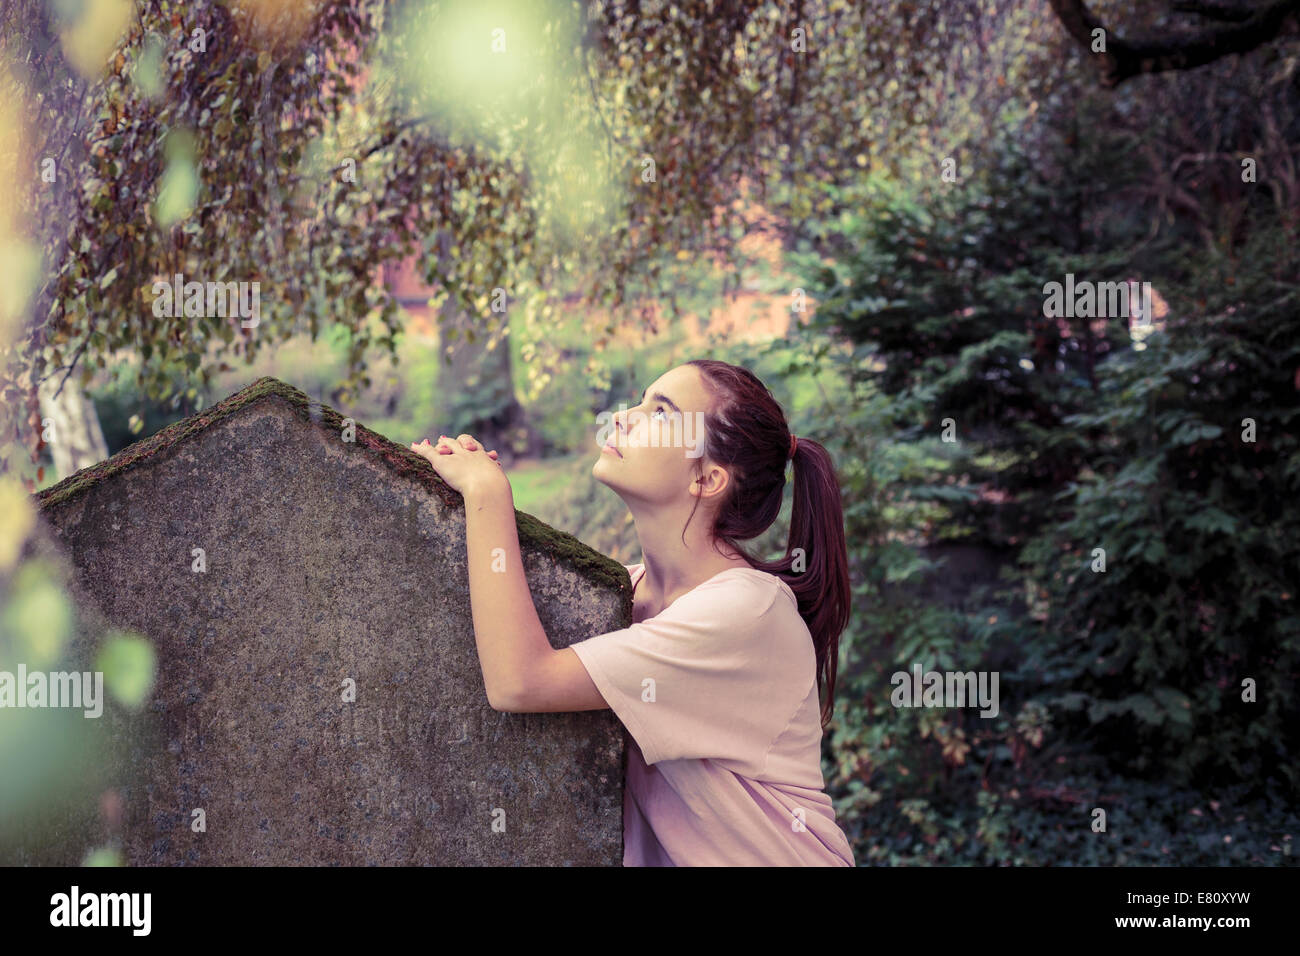 L'analyse d'une femme vintage touchant un tombstone envahi par la mousse Photo Stock